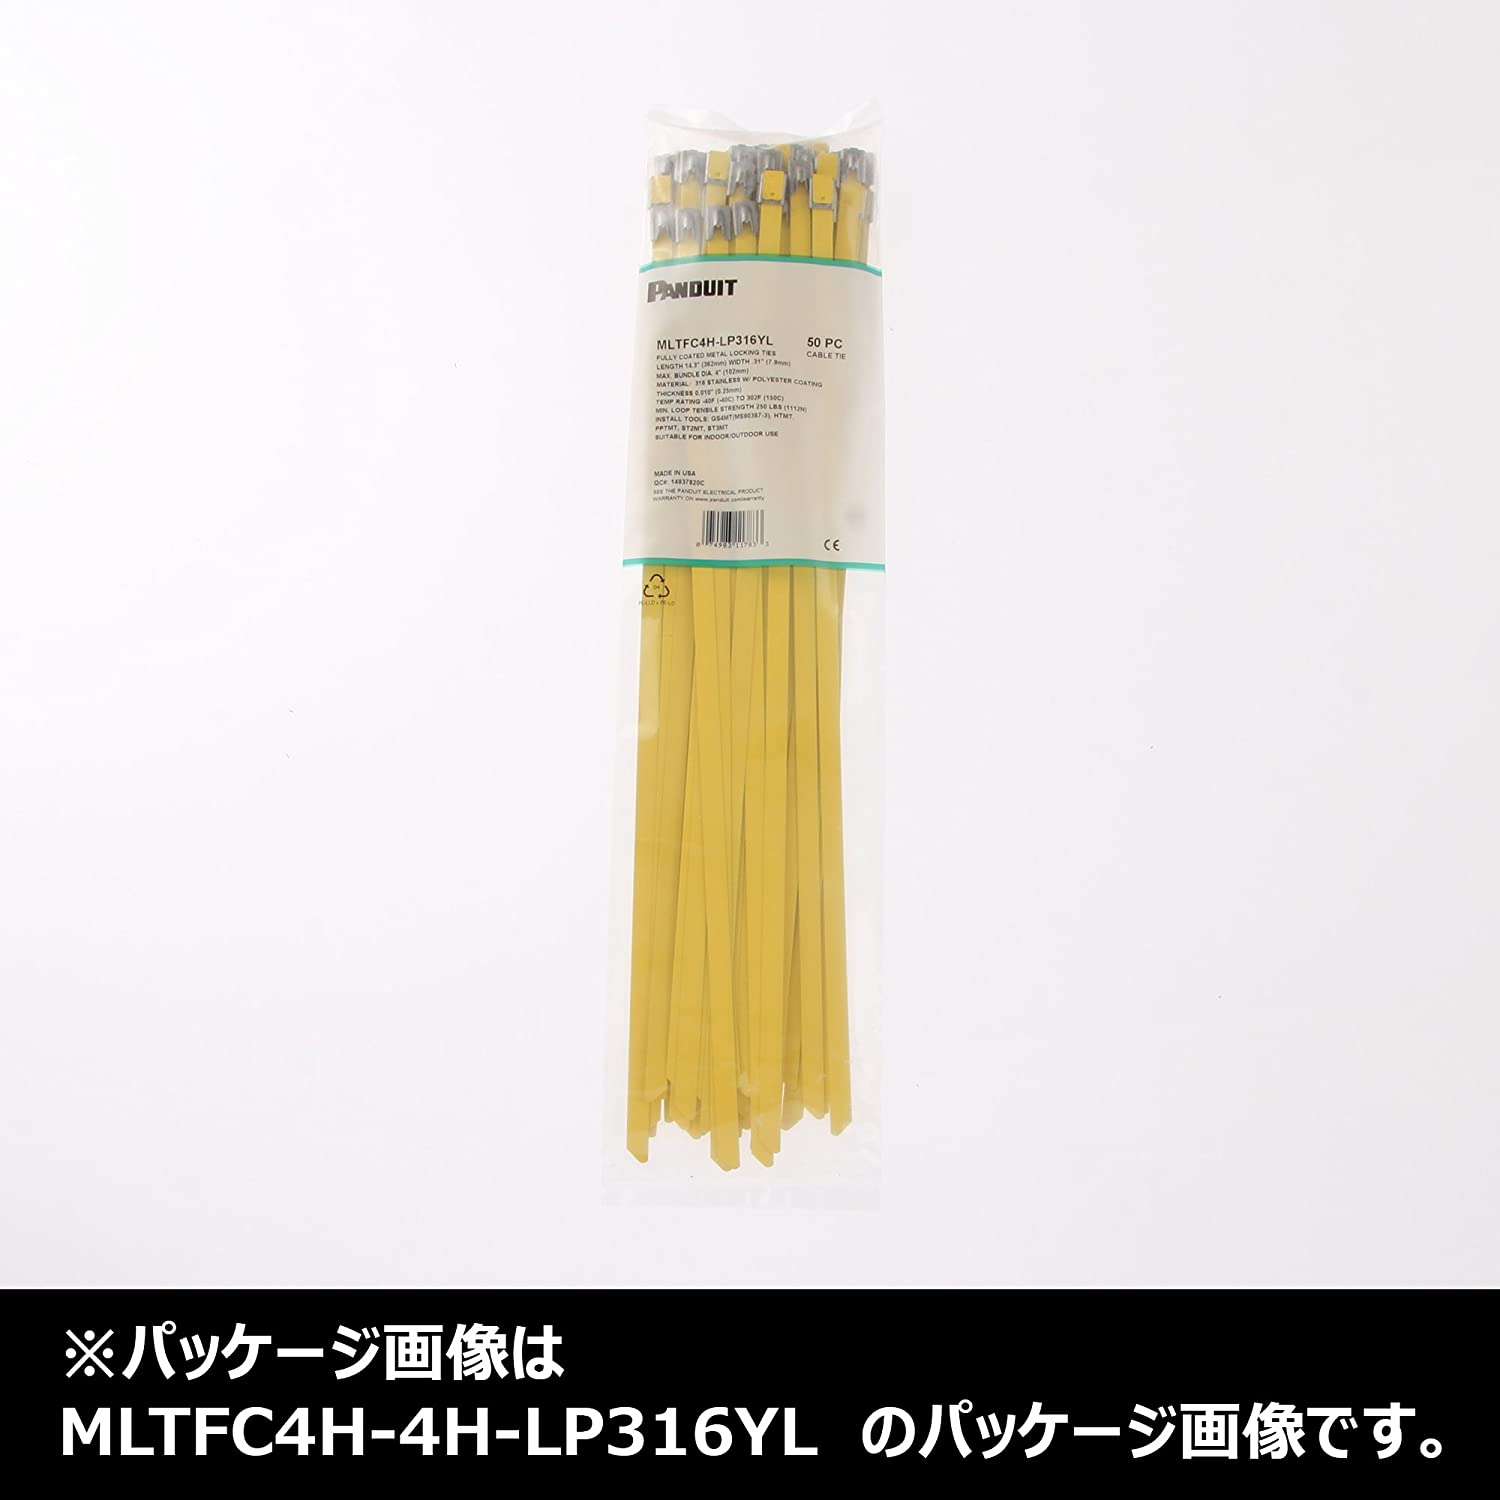 Heavy Cross Section AISI 316 Stainless Steel 250lbs Min Tensile Strength 0.010 Thickness 0.31 Width 20.5 Length 0.010 Thickness Yellow Pack of 50 Panduit MLTFC6H-LP316YL Pan-Steel Polyester Fully Coated Cable Tie 6.0 Max Bundle Diameter